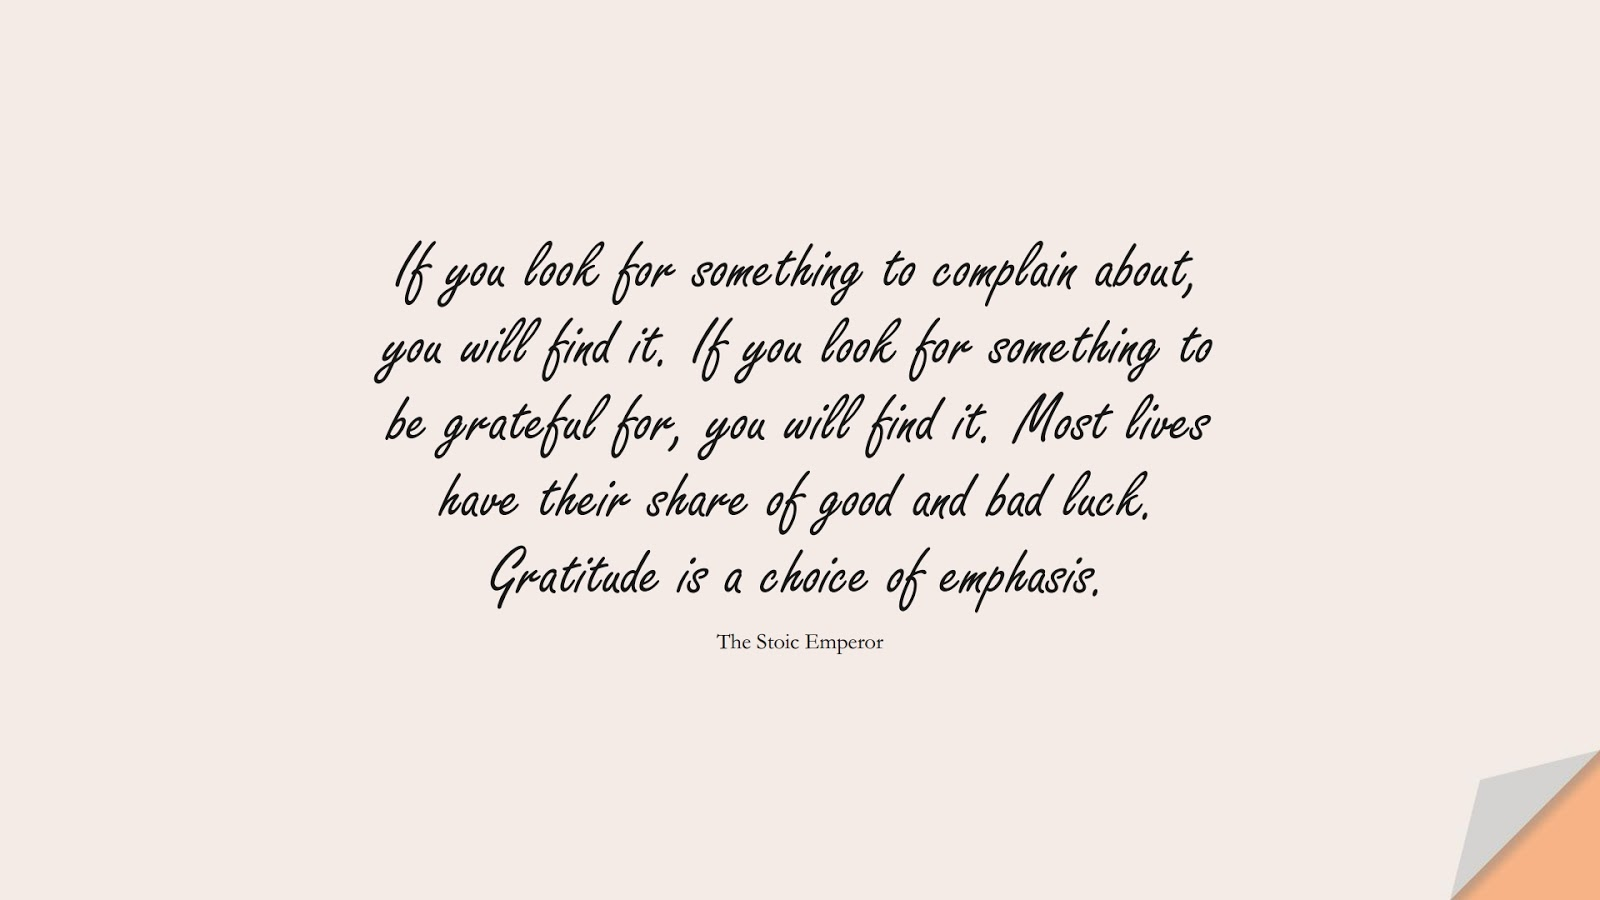 If you look for something to complain about, you will find it. If you look for something to be grateful for, you will find it. Most lives have their share of good and bad luck. Gratitude is a choice of emphasis. (The Stoic Emperor);  #DepressionQuotes